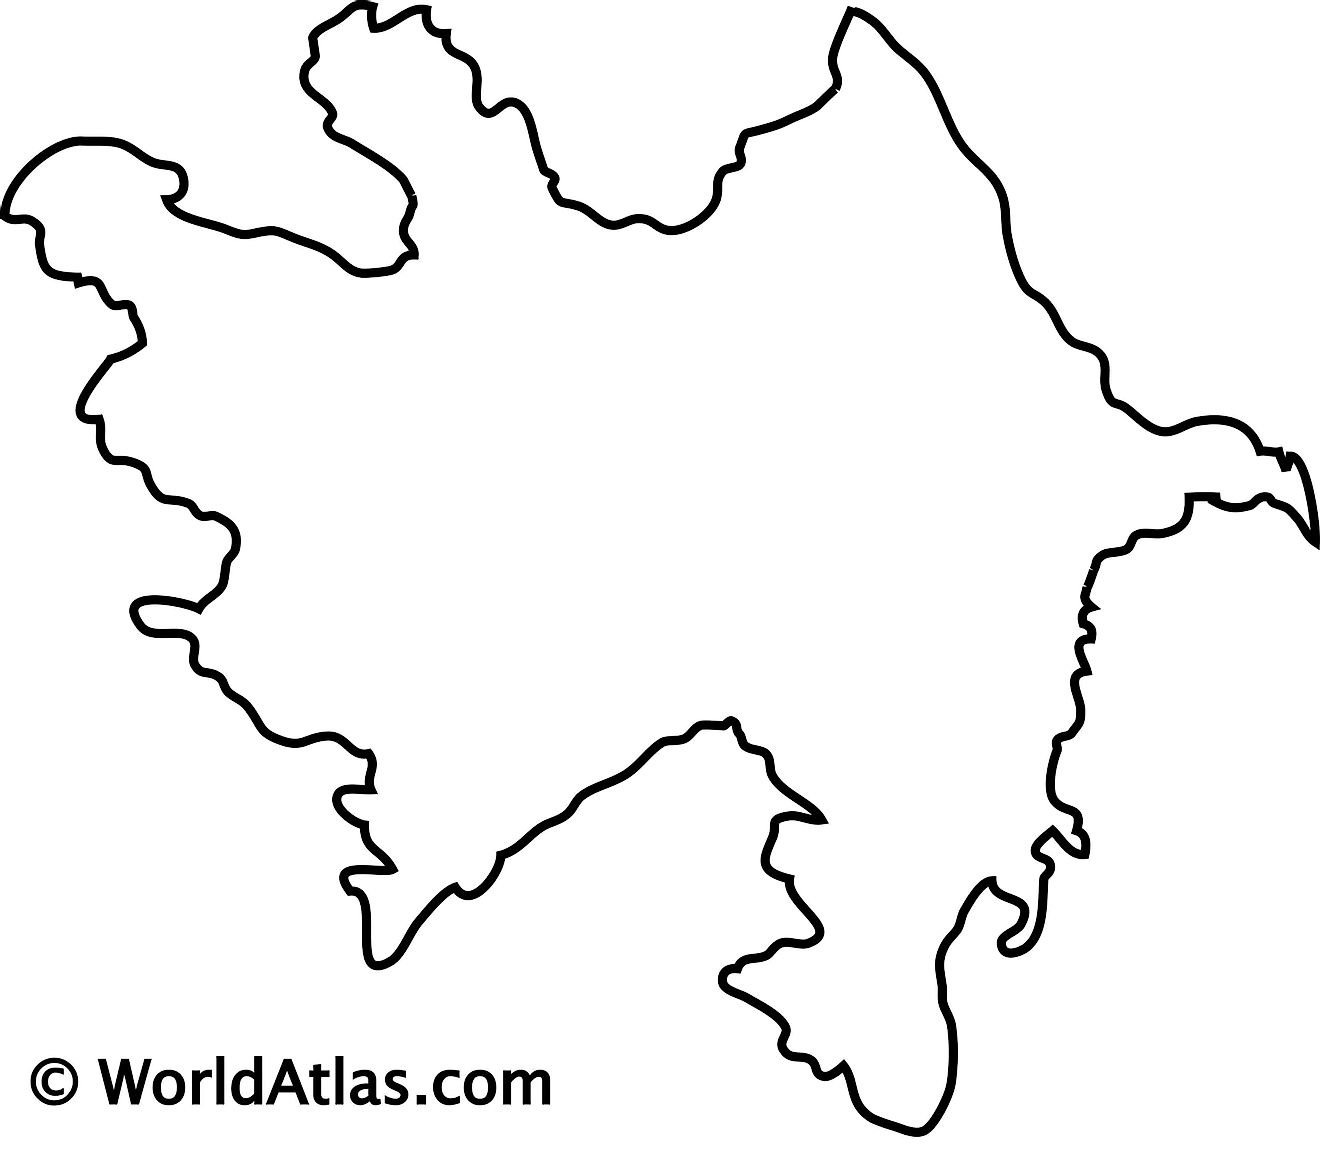 Blank Outline Map of Azerbaijan